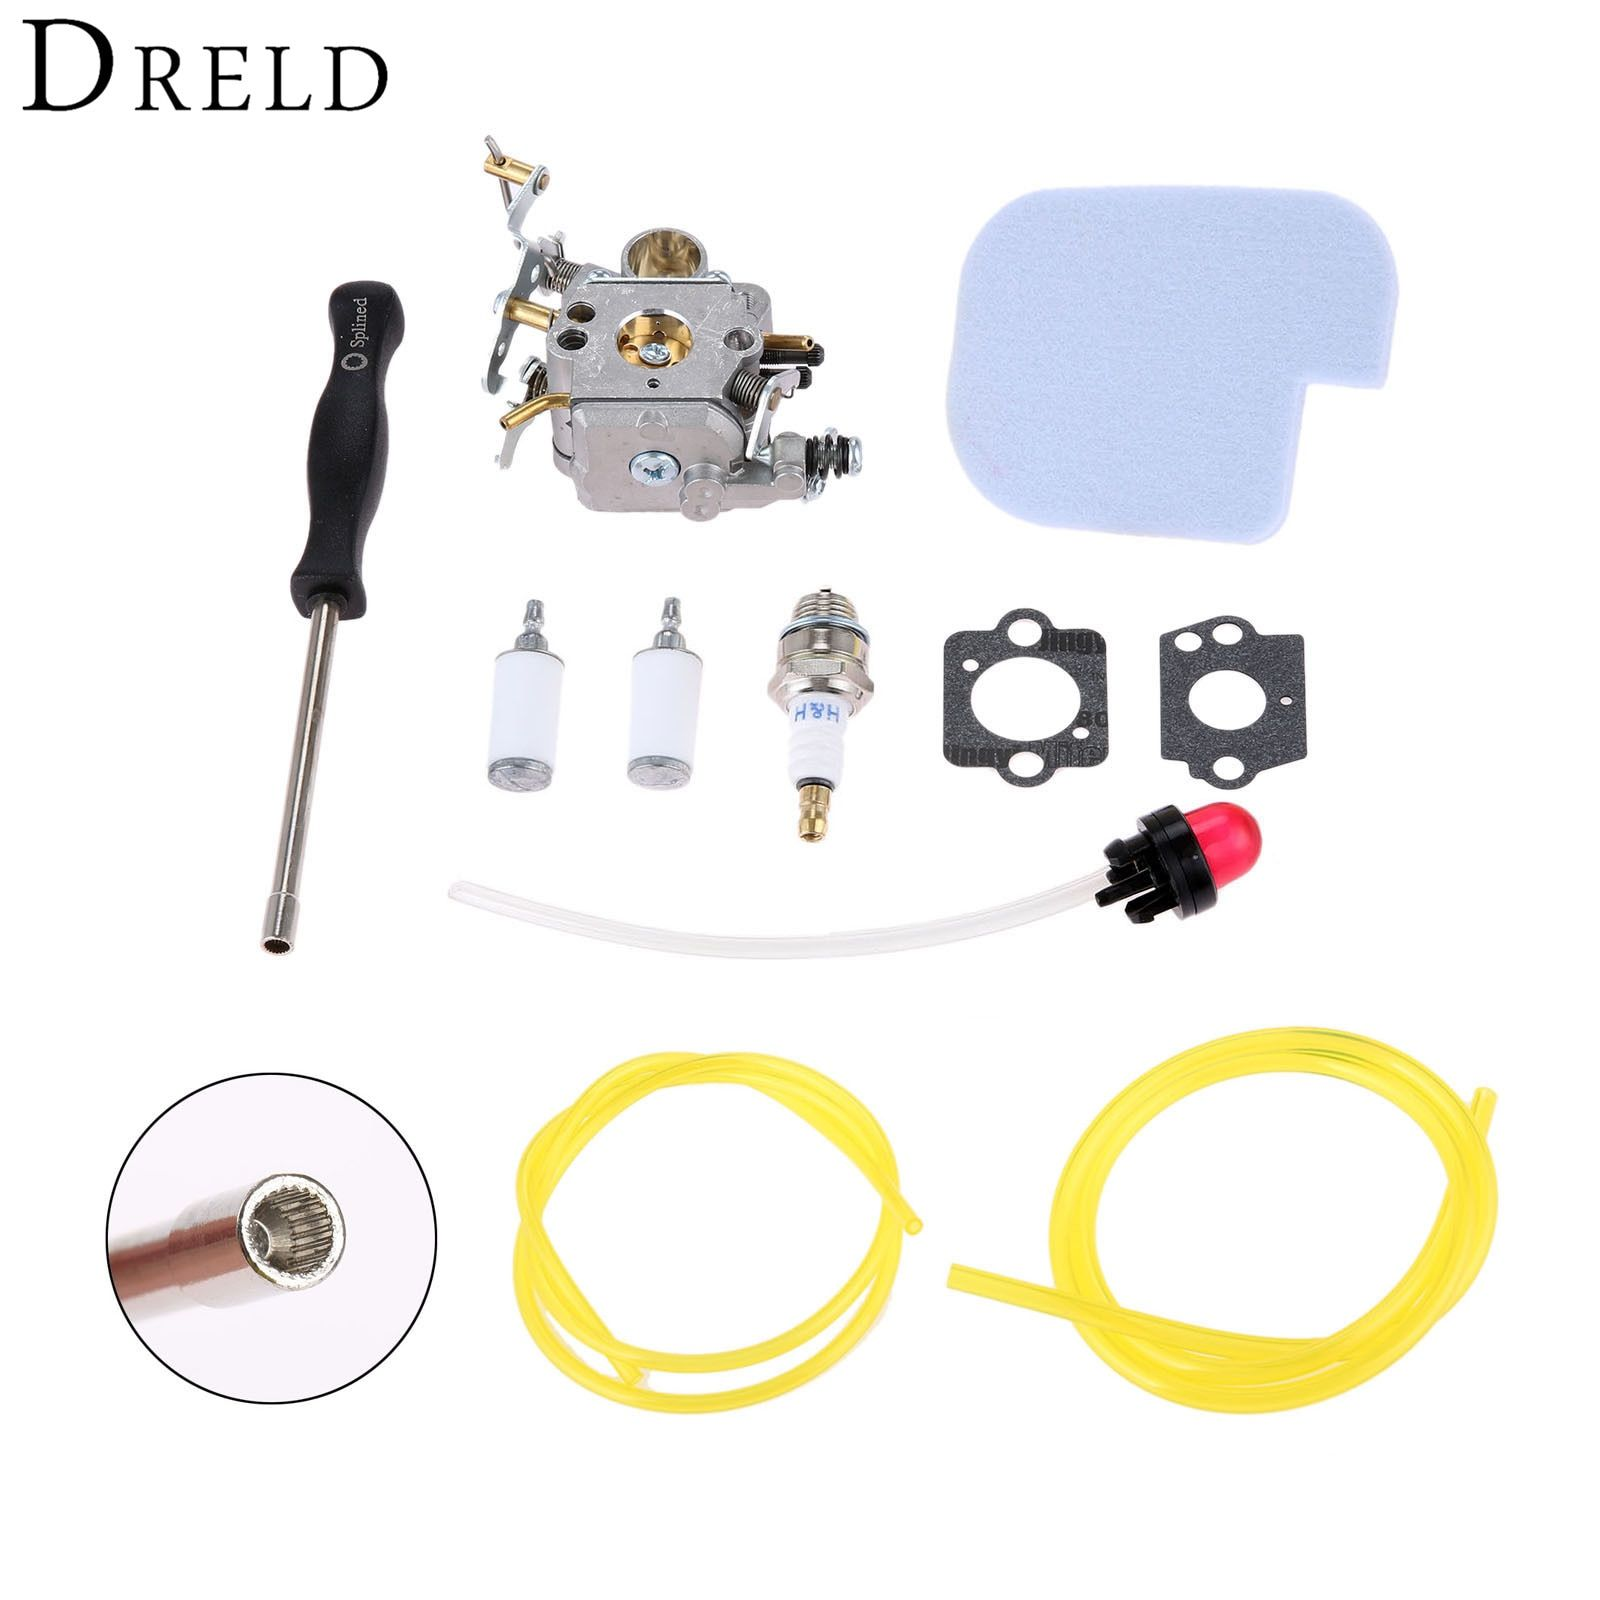 Dreld Carburetor Carb Gasket Fuel Filter Primer Bulb Air Filter